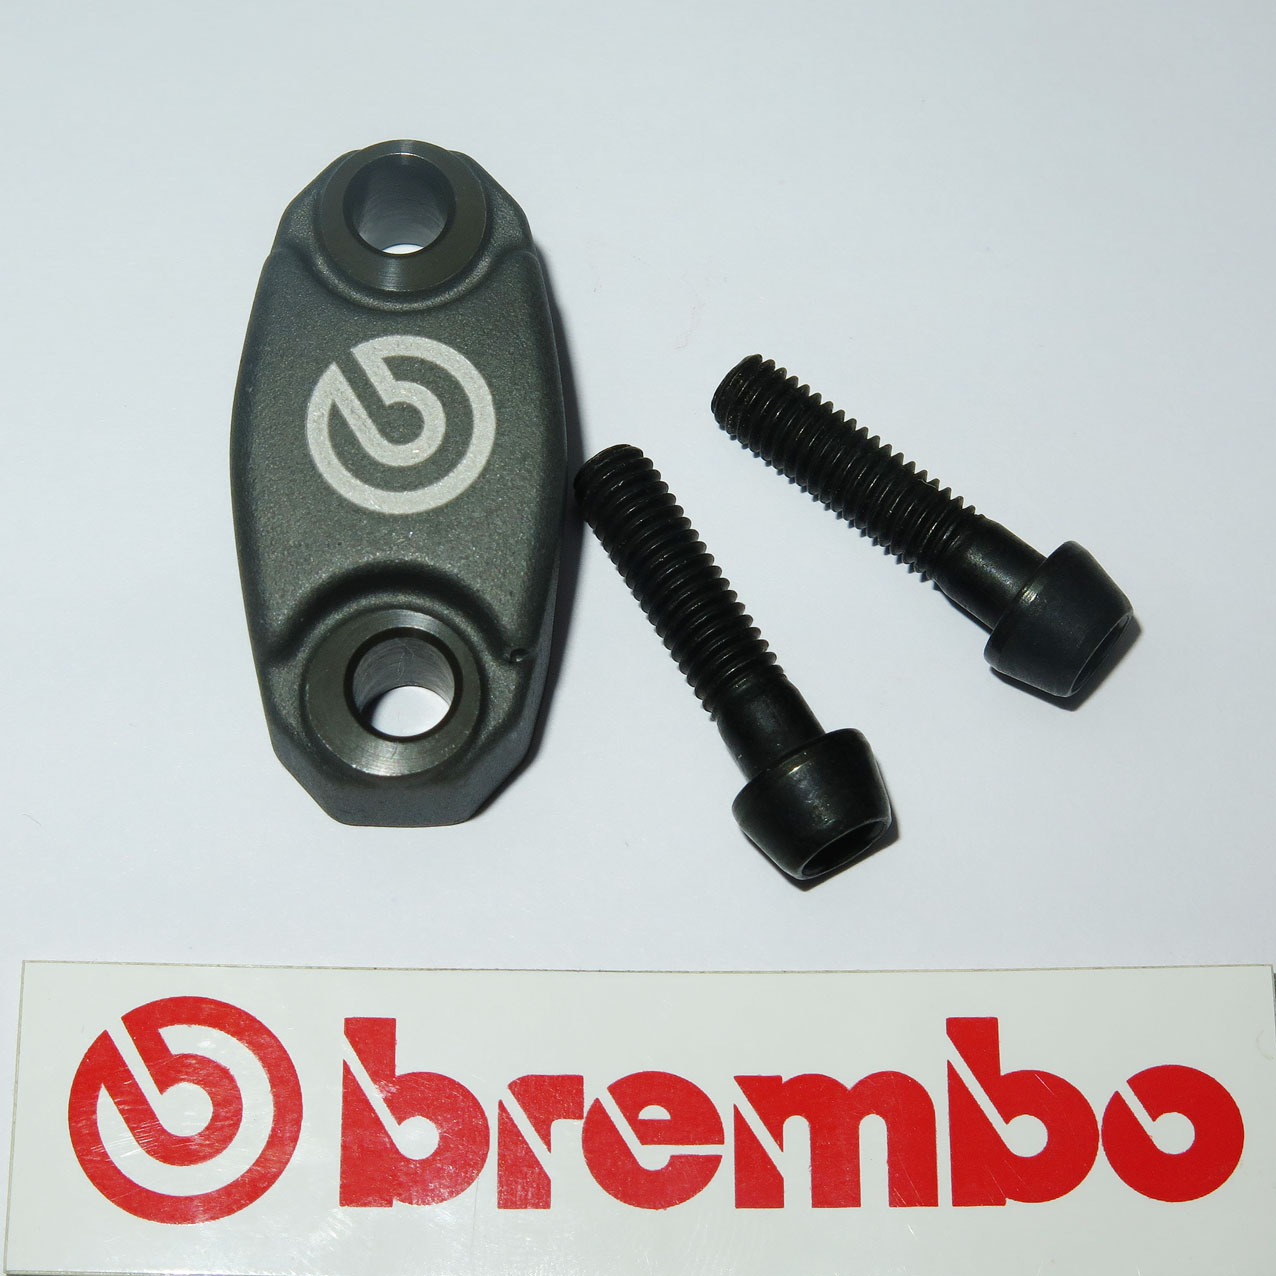 Brembo clamp, standard for 19/17 RCS Corsa Corta